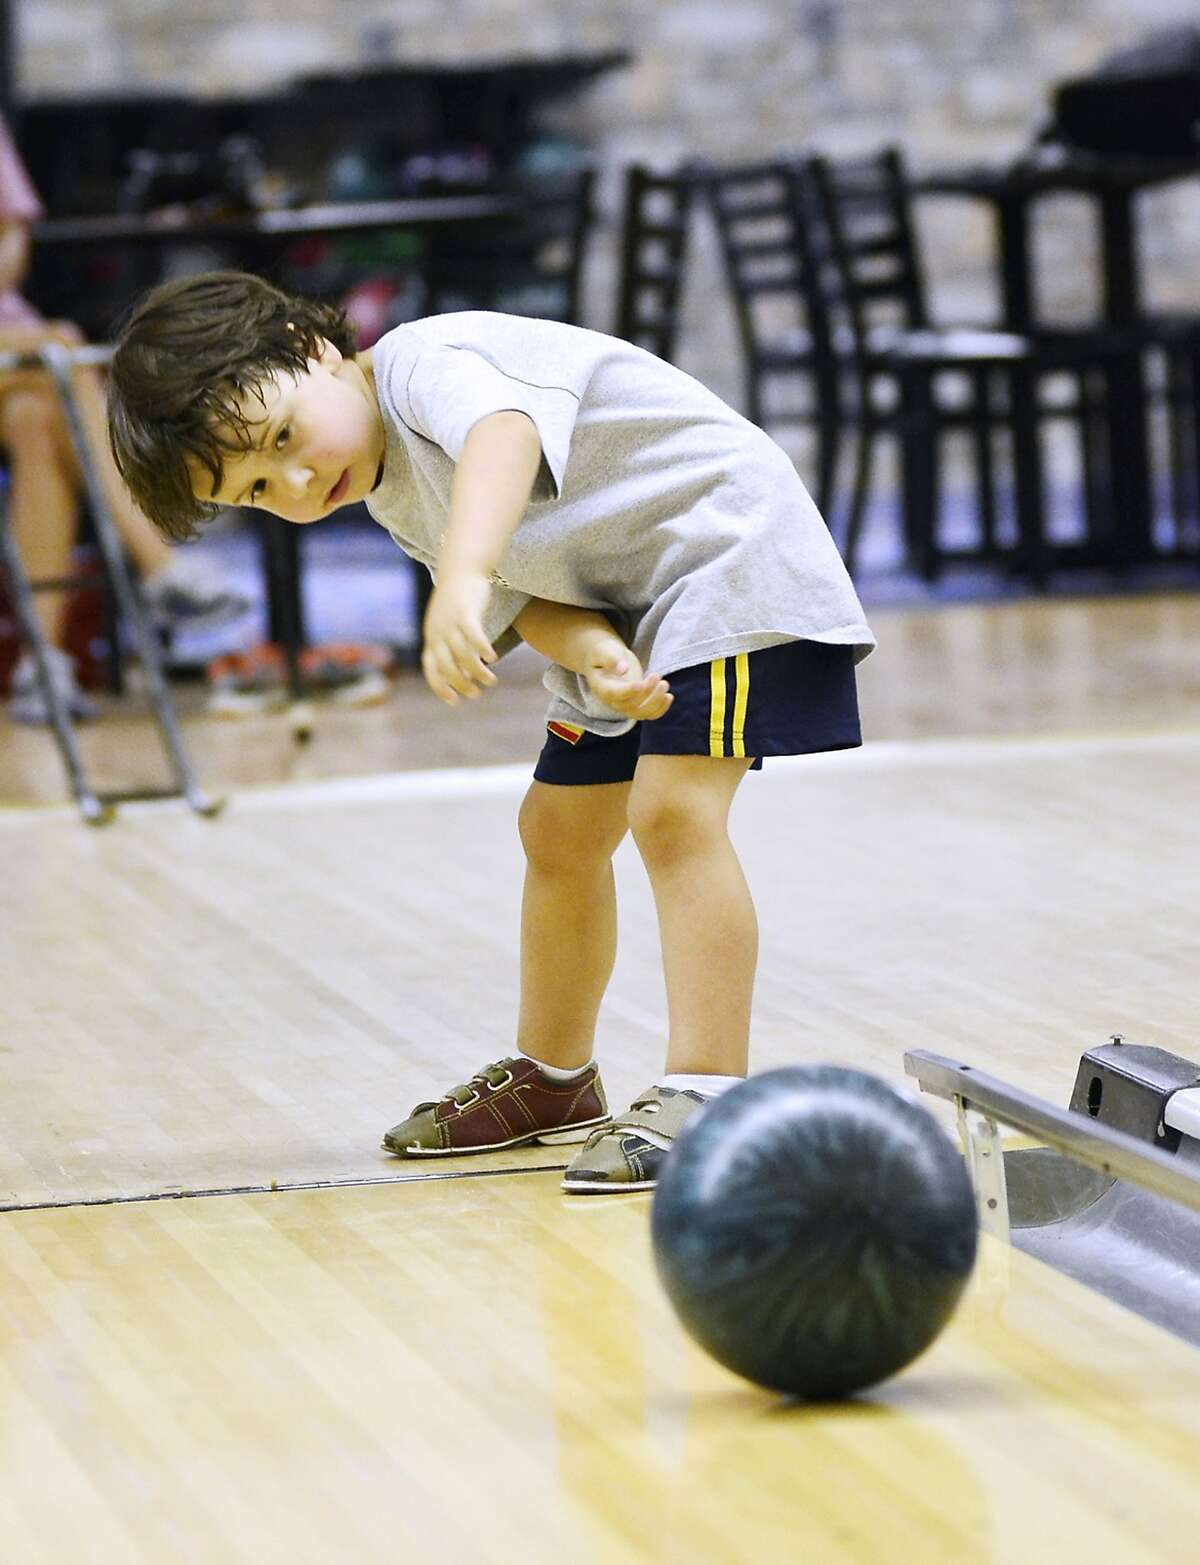 Uh-oh, look at that foot. Lane violation:Three-year-old Parker Umphlett rolls a ball down a lane at the High Point Bowling Center in High Point, N.C.